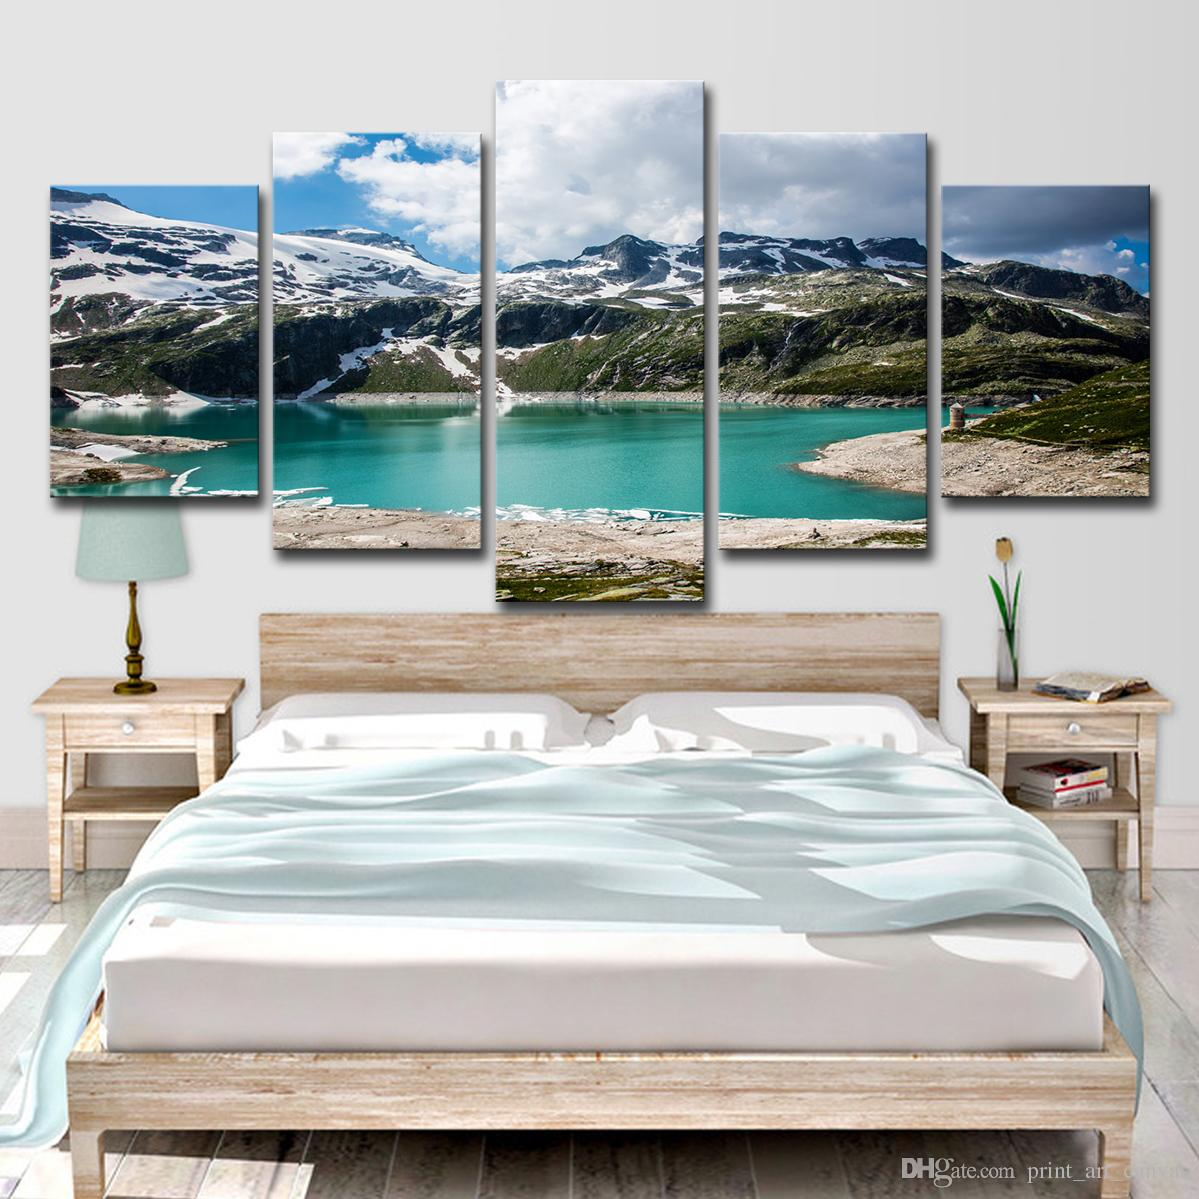 2019 Canvas Paintings Wall Art Home Decor Emerald Snowy Lake Mountains Poster For Living Room HD Prints Pictures From Print 1641